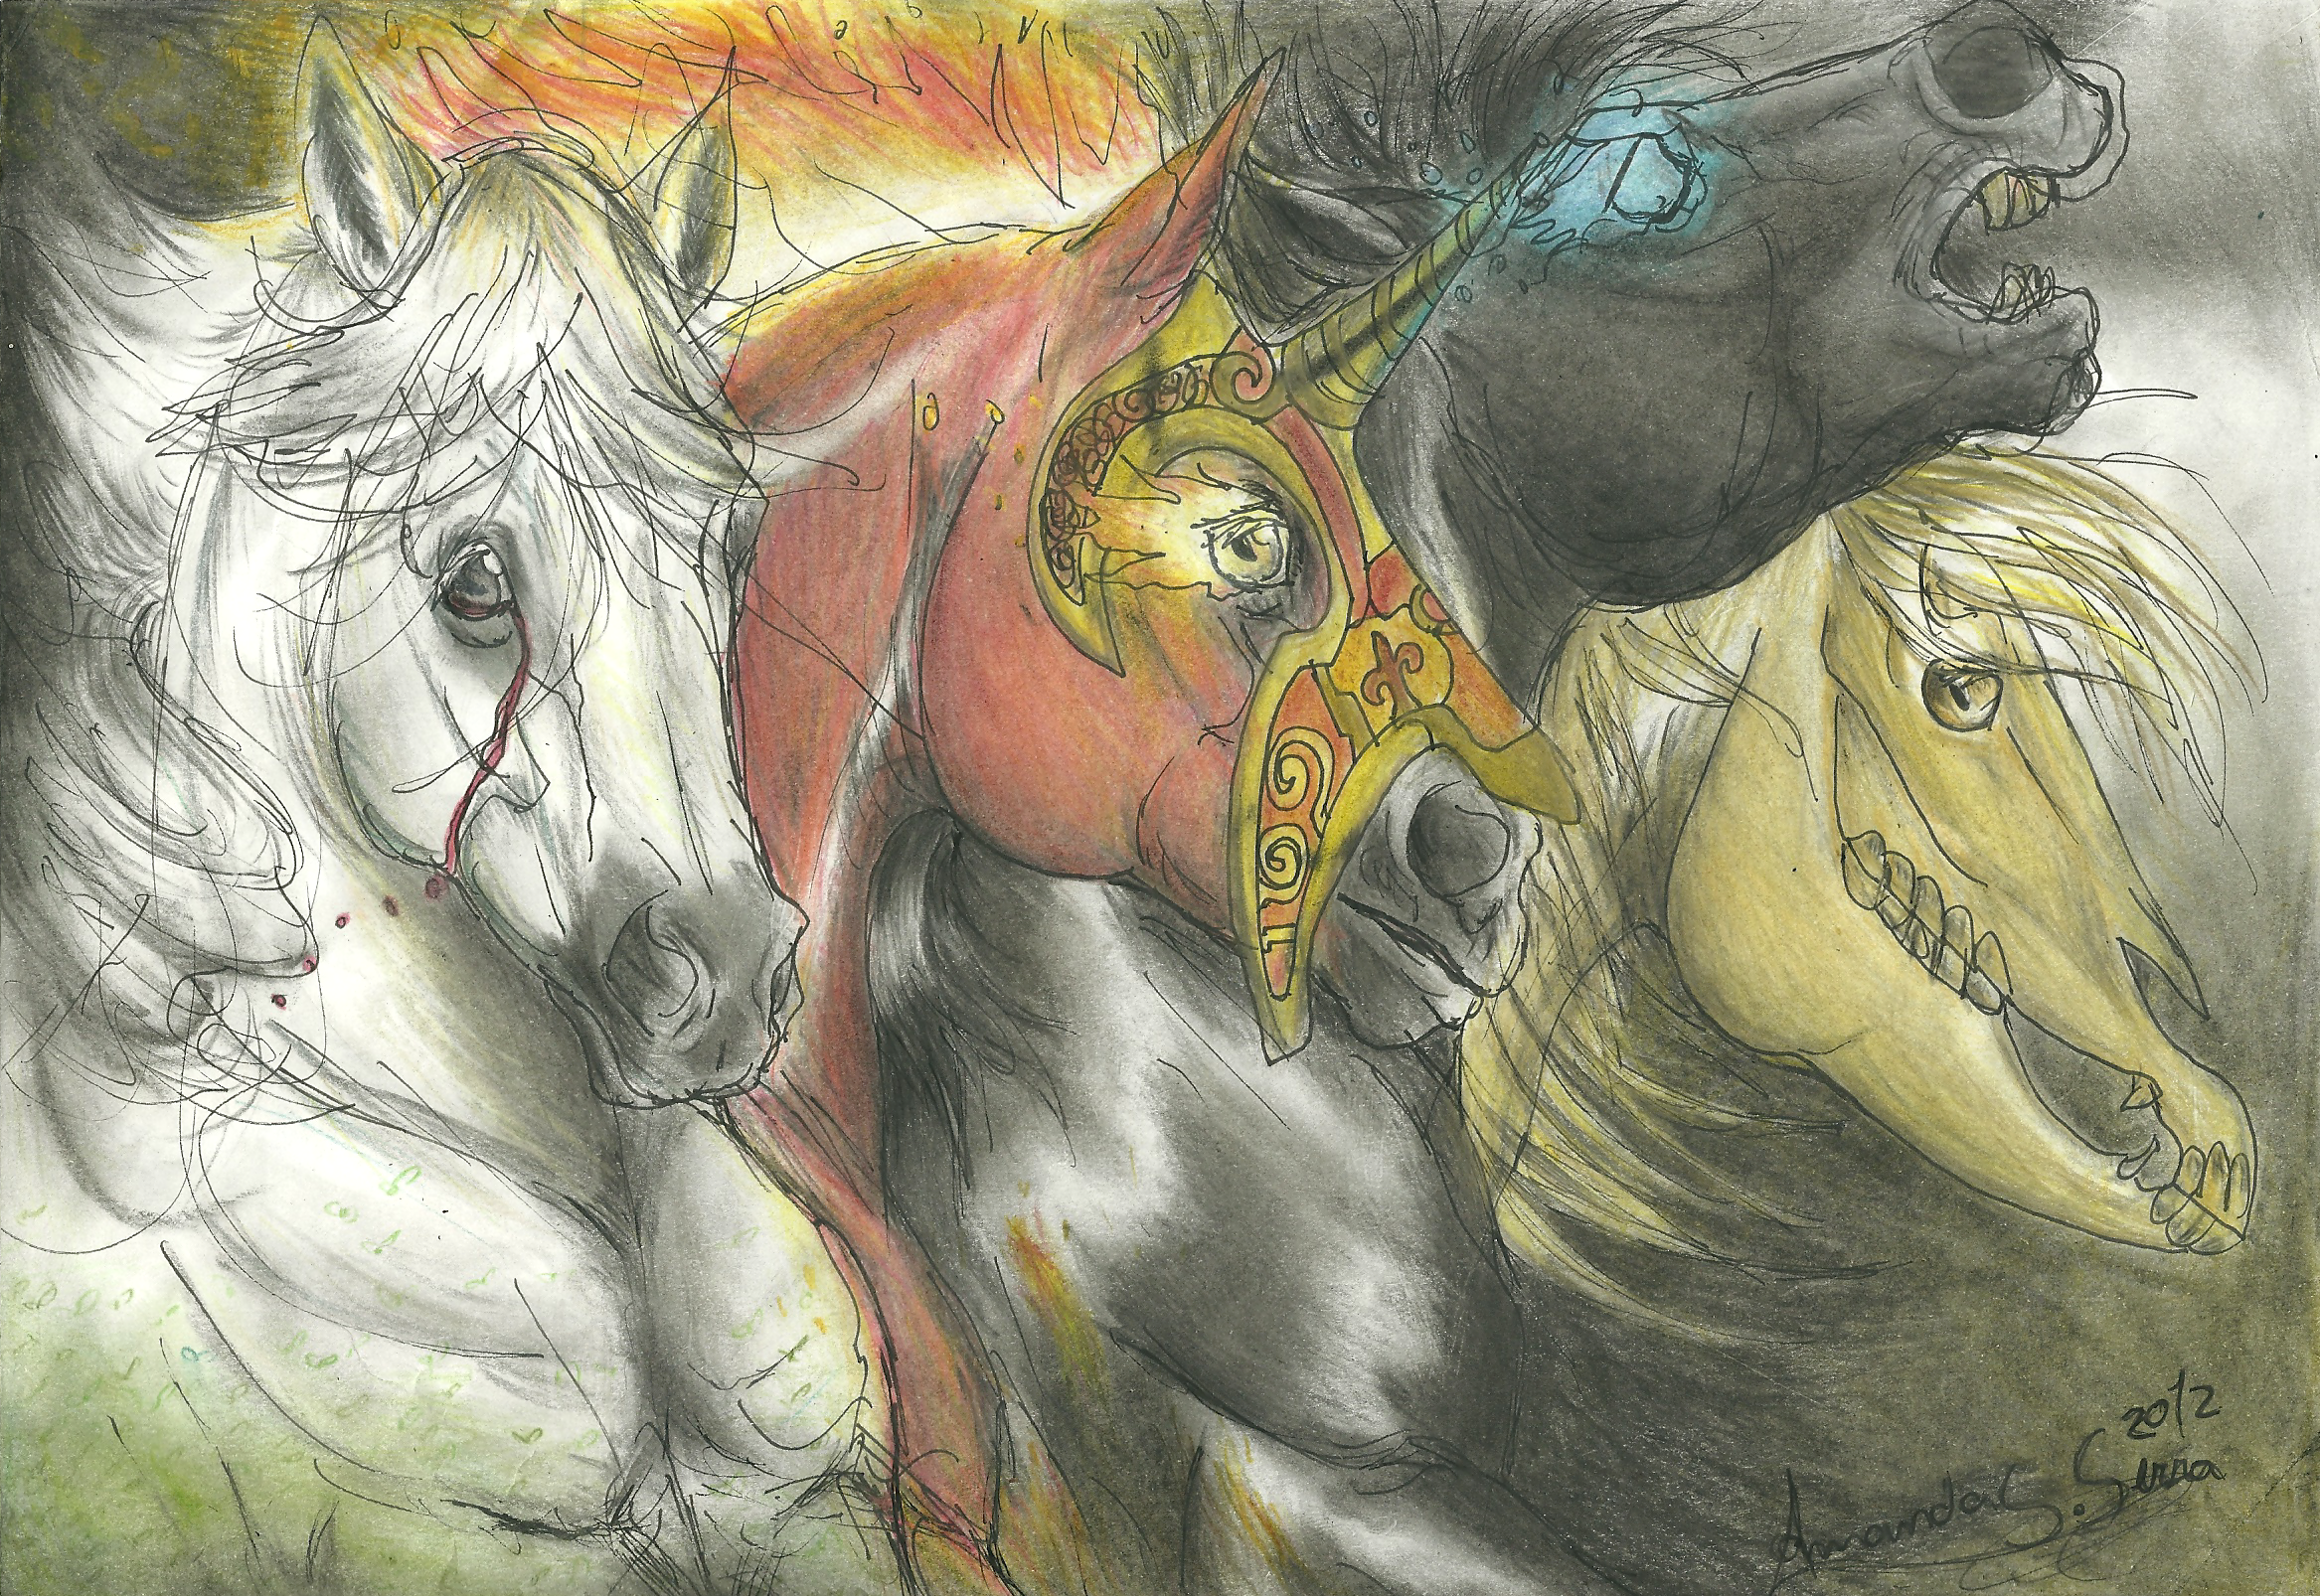 the 4 horses of apocalipse by AmanndaSierra